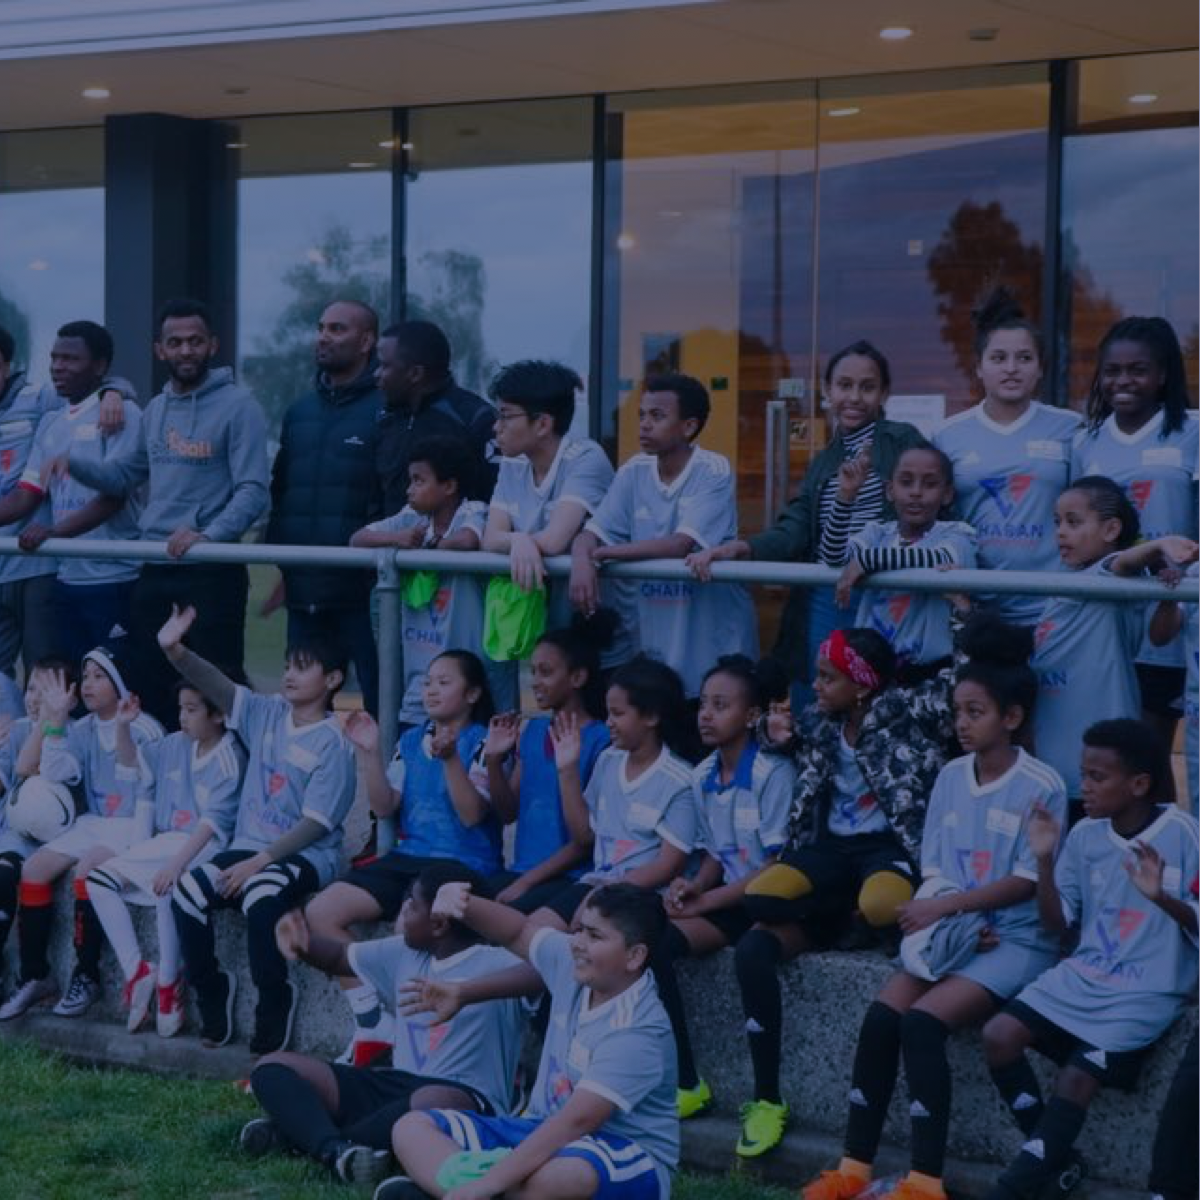 Charan Foundation partnership with Football Empowerment - Young people in Melbourne have been participating in a free soccer program thanks to a partnership between the Charan Foundation and Football Empowerment.